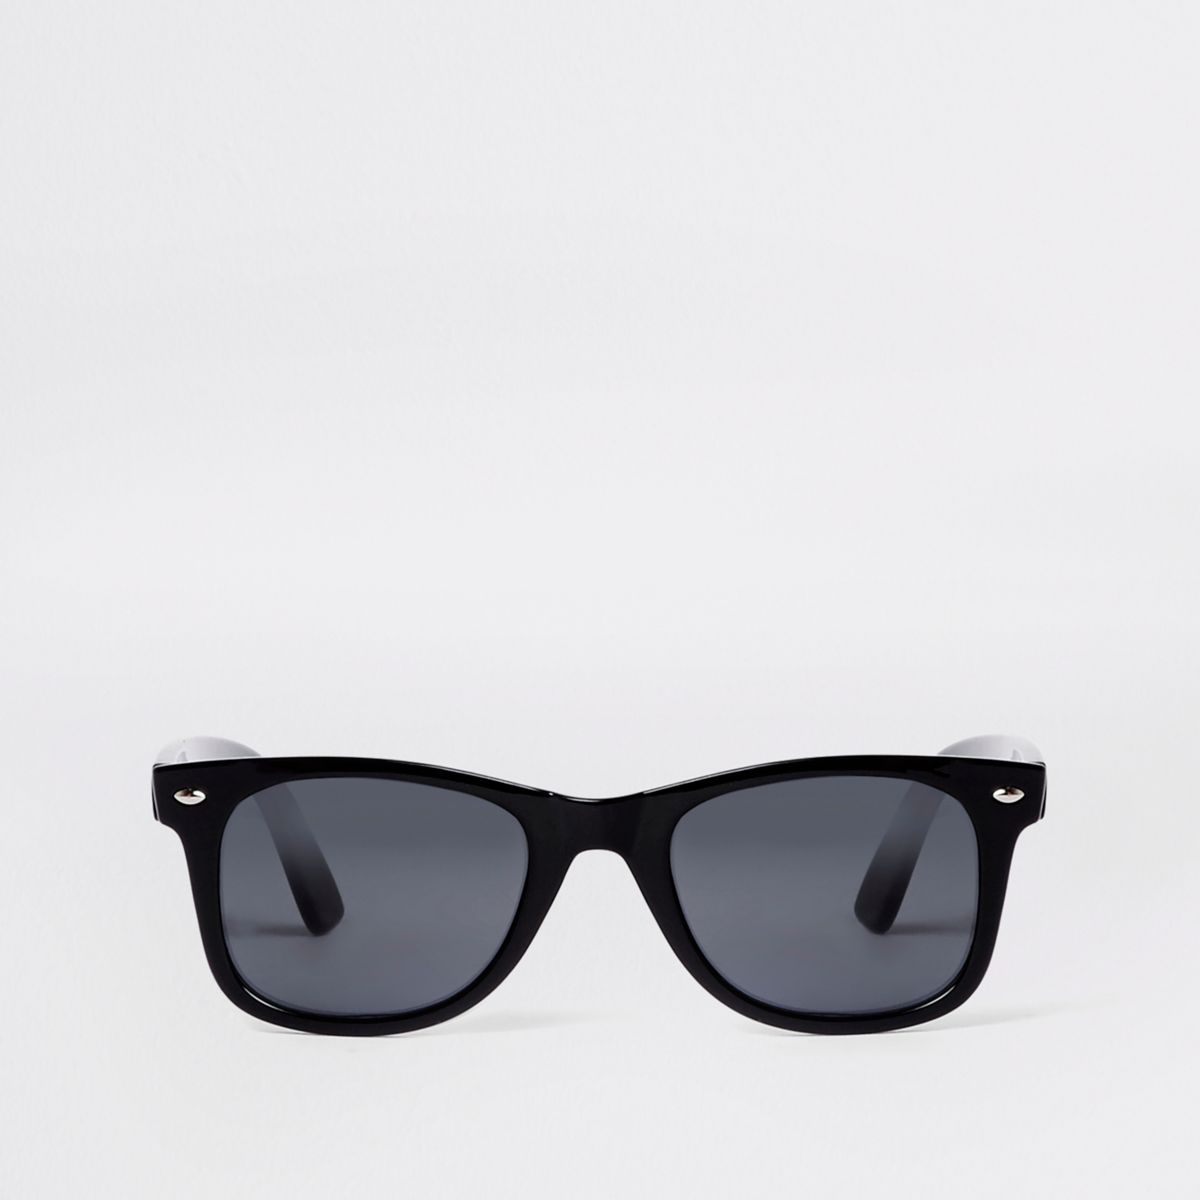 Black shiny retro sunglasses